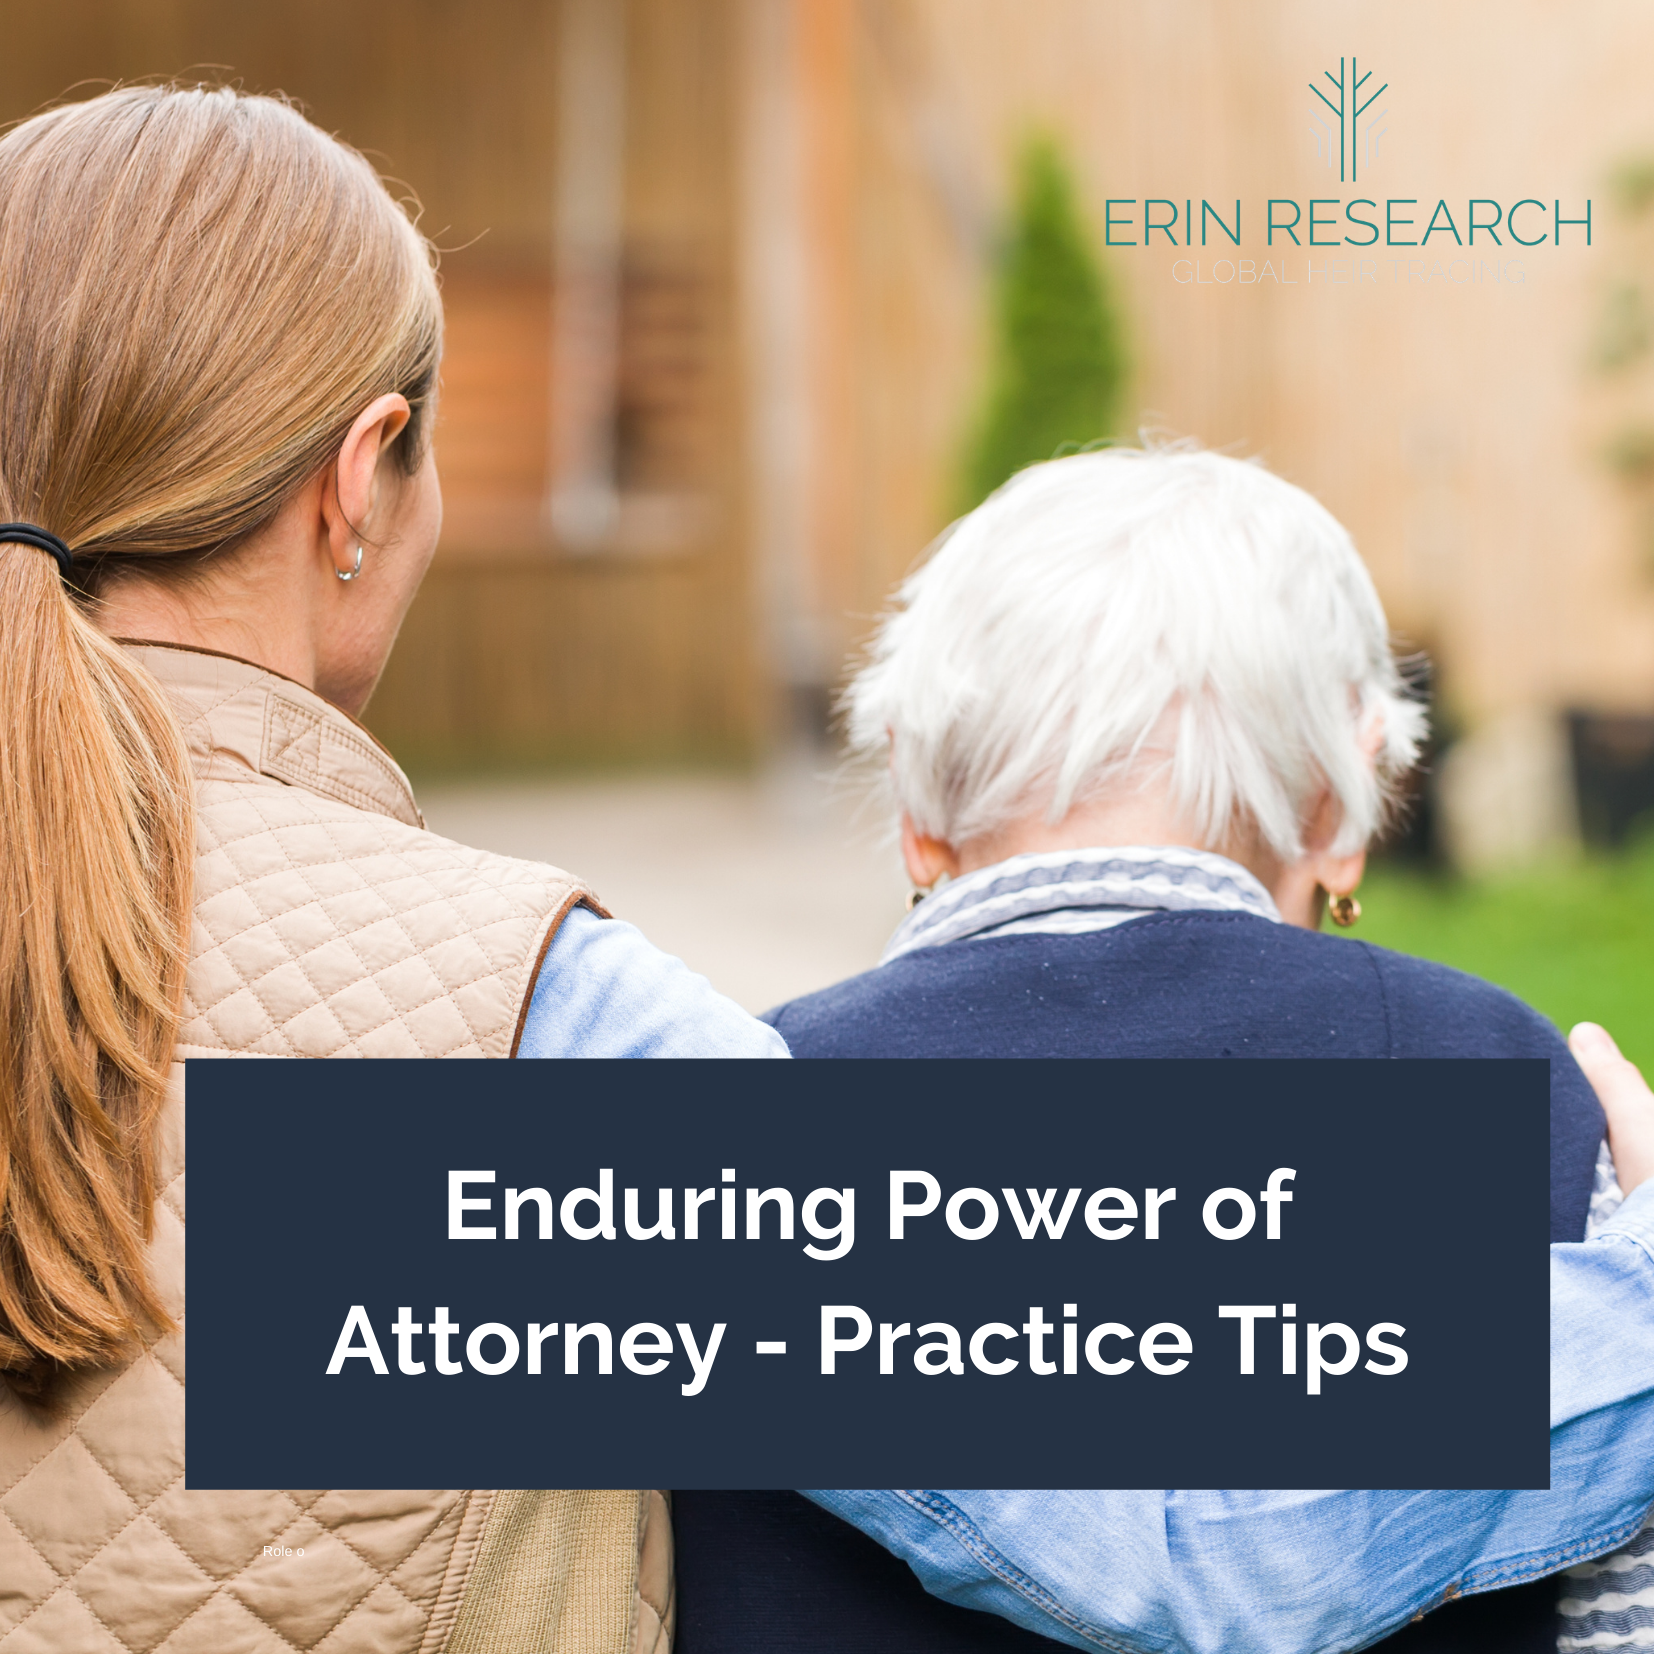 What is an Enduring Power of Attorney? Practice tips for solicitors to make the process as smooth as possible for clients and their families when drafting Enduring Power of Attorney